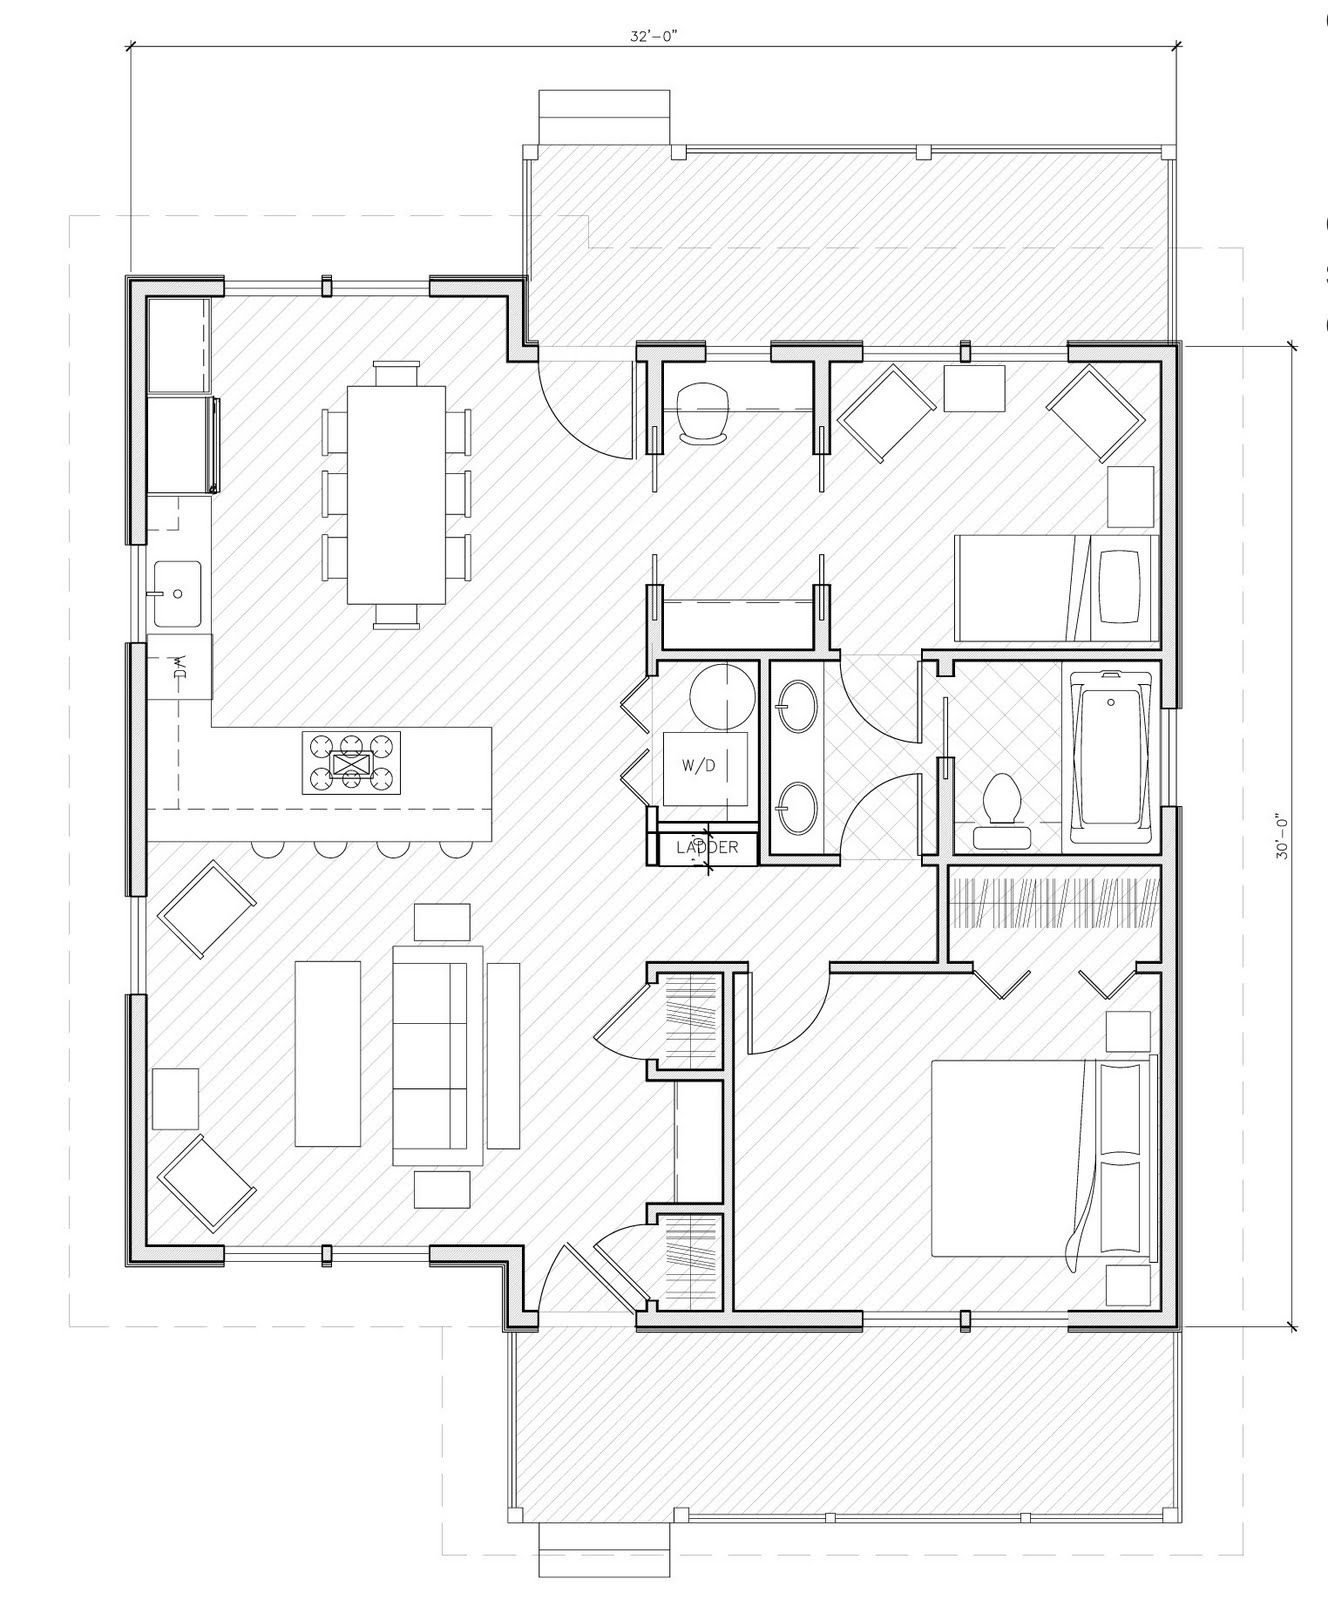 Small house plans under 1000 sq ft homes pinterest for Cottages under 1000 sq ft